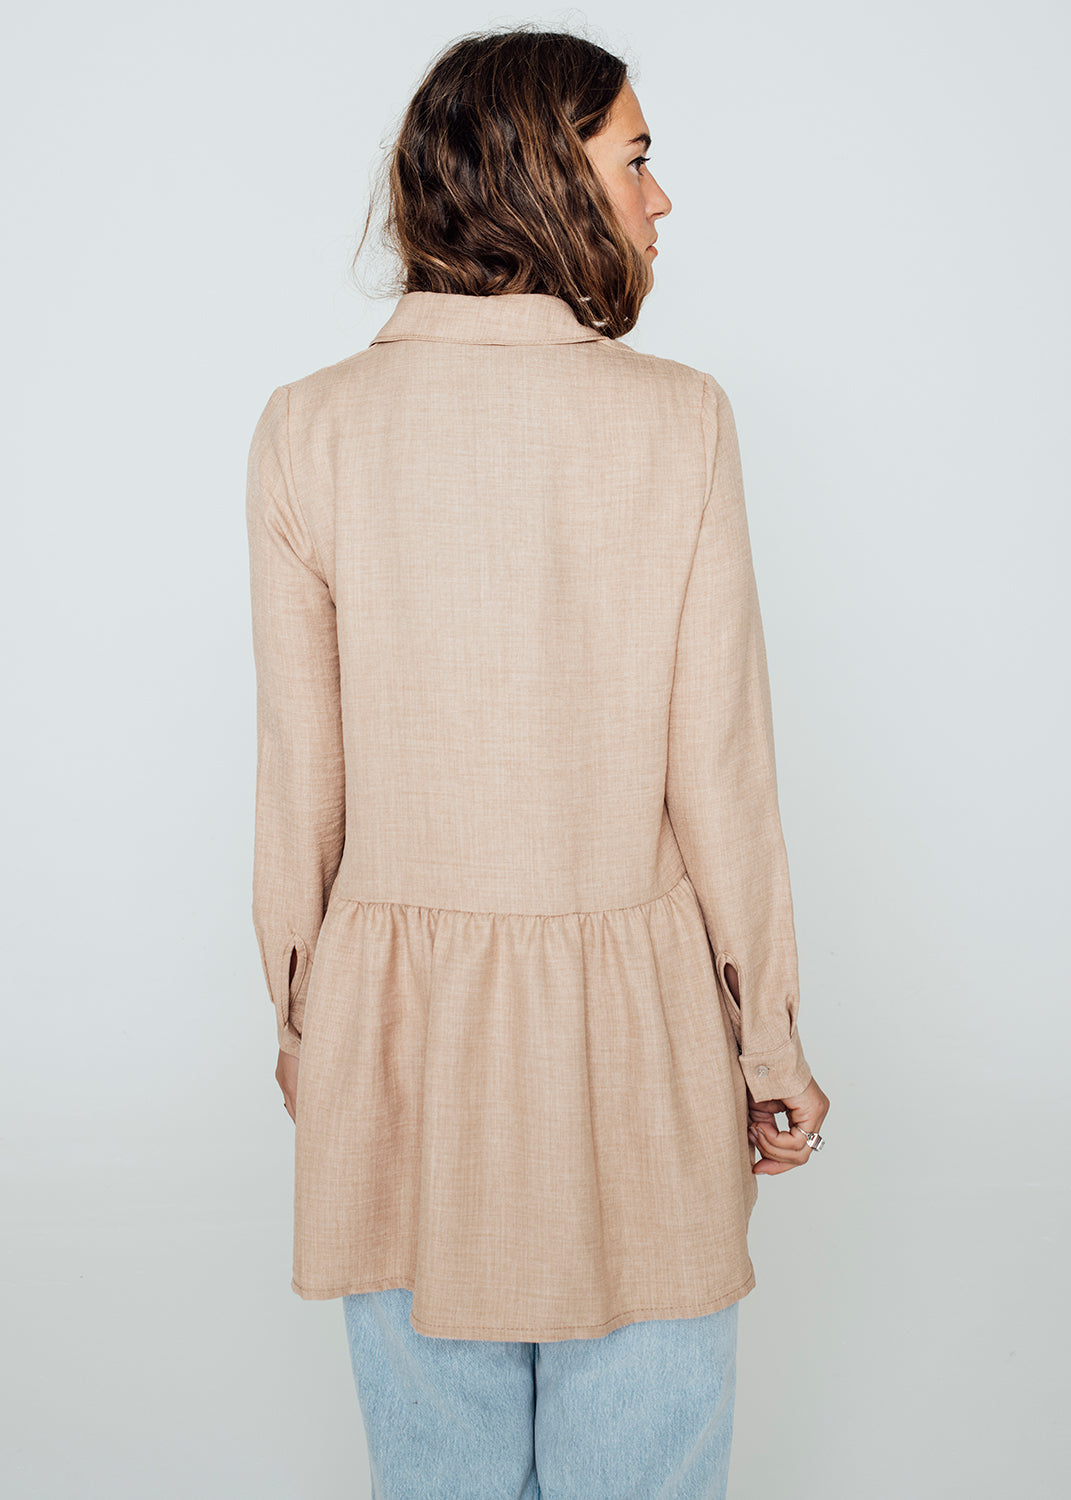 Blouse Camel - Lucy